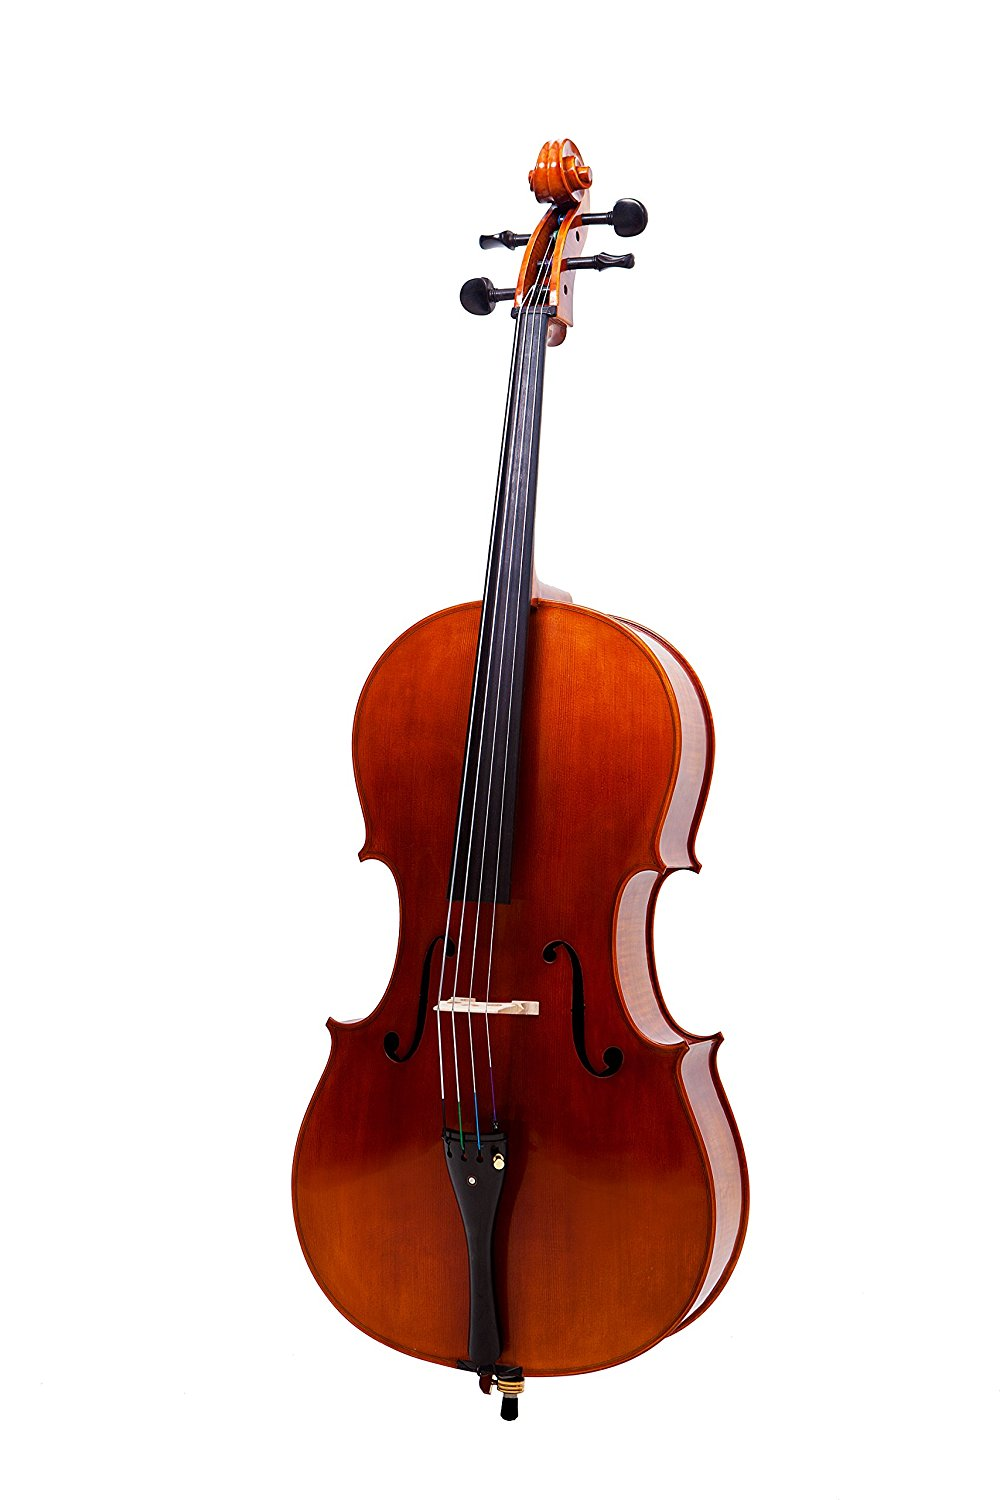 SANDNER 4/4 MASTER CELLO OUTFIT